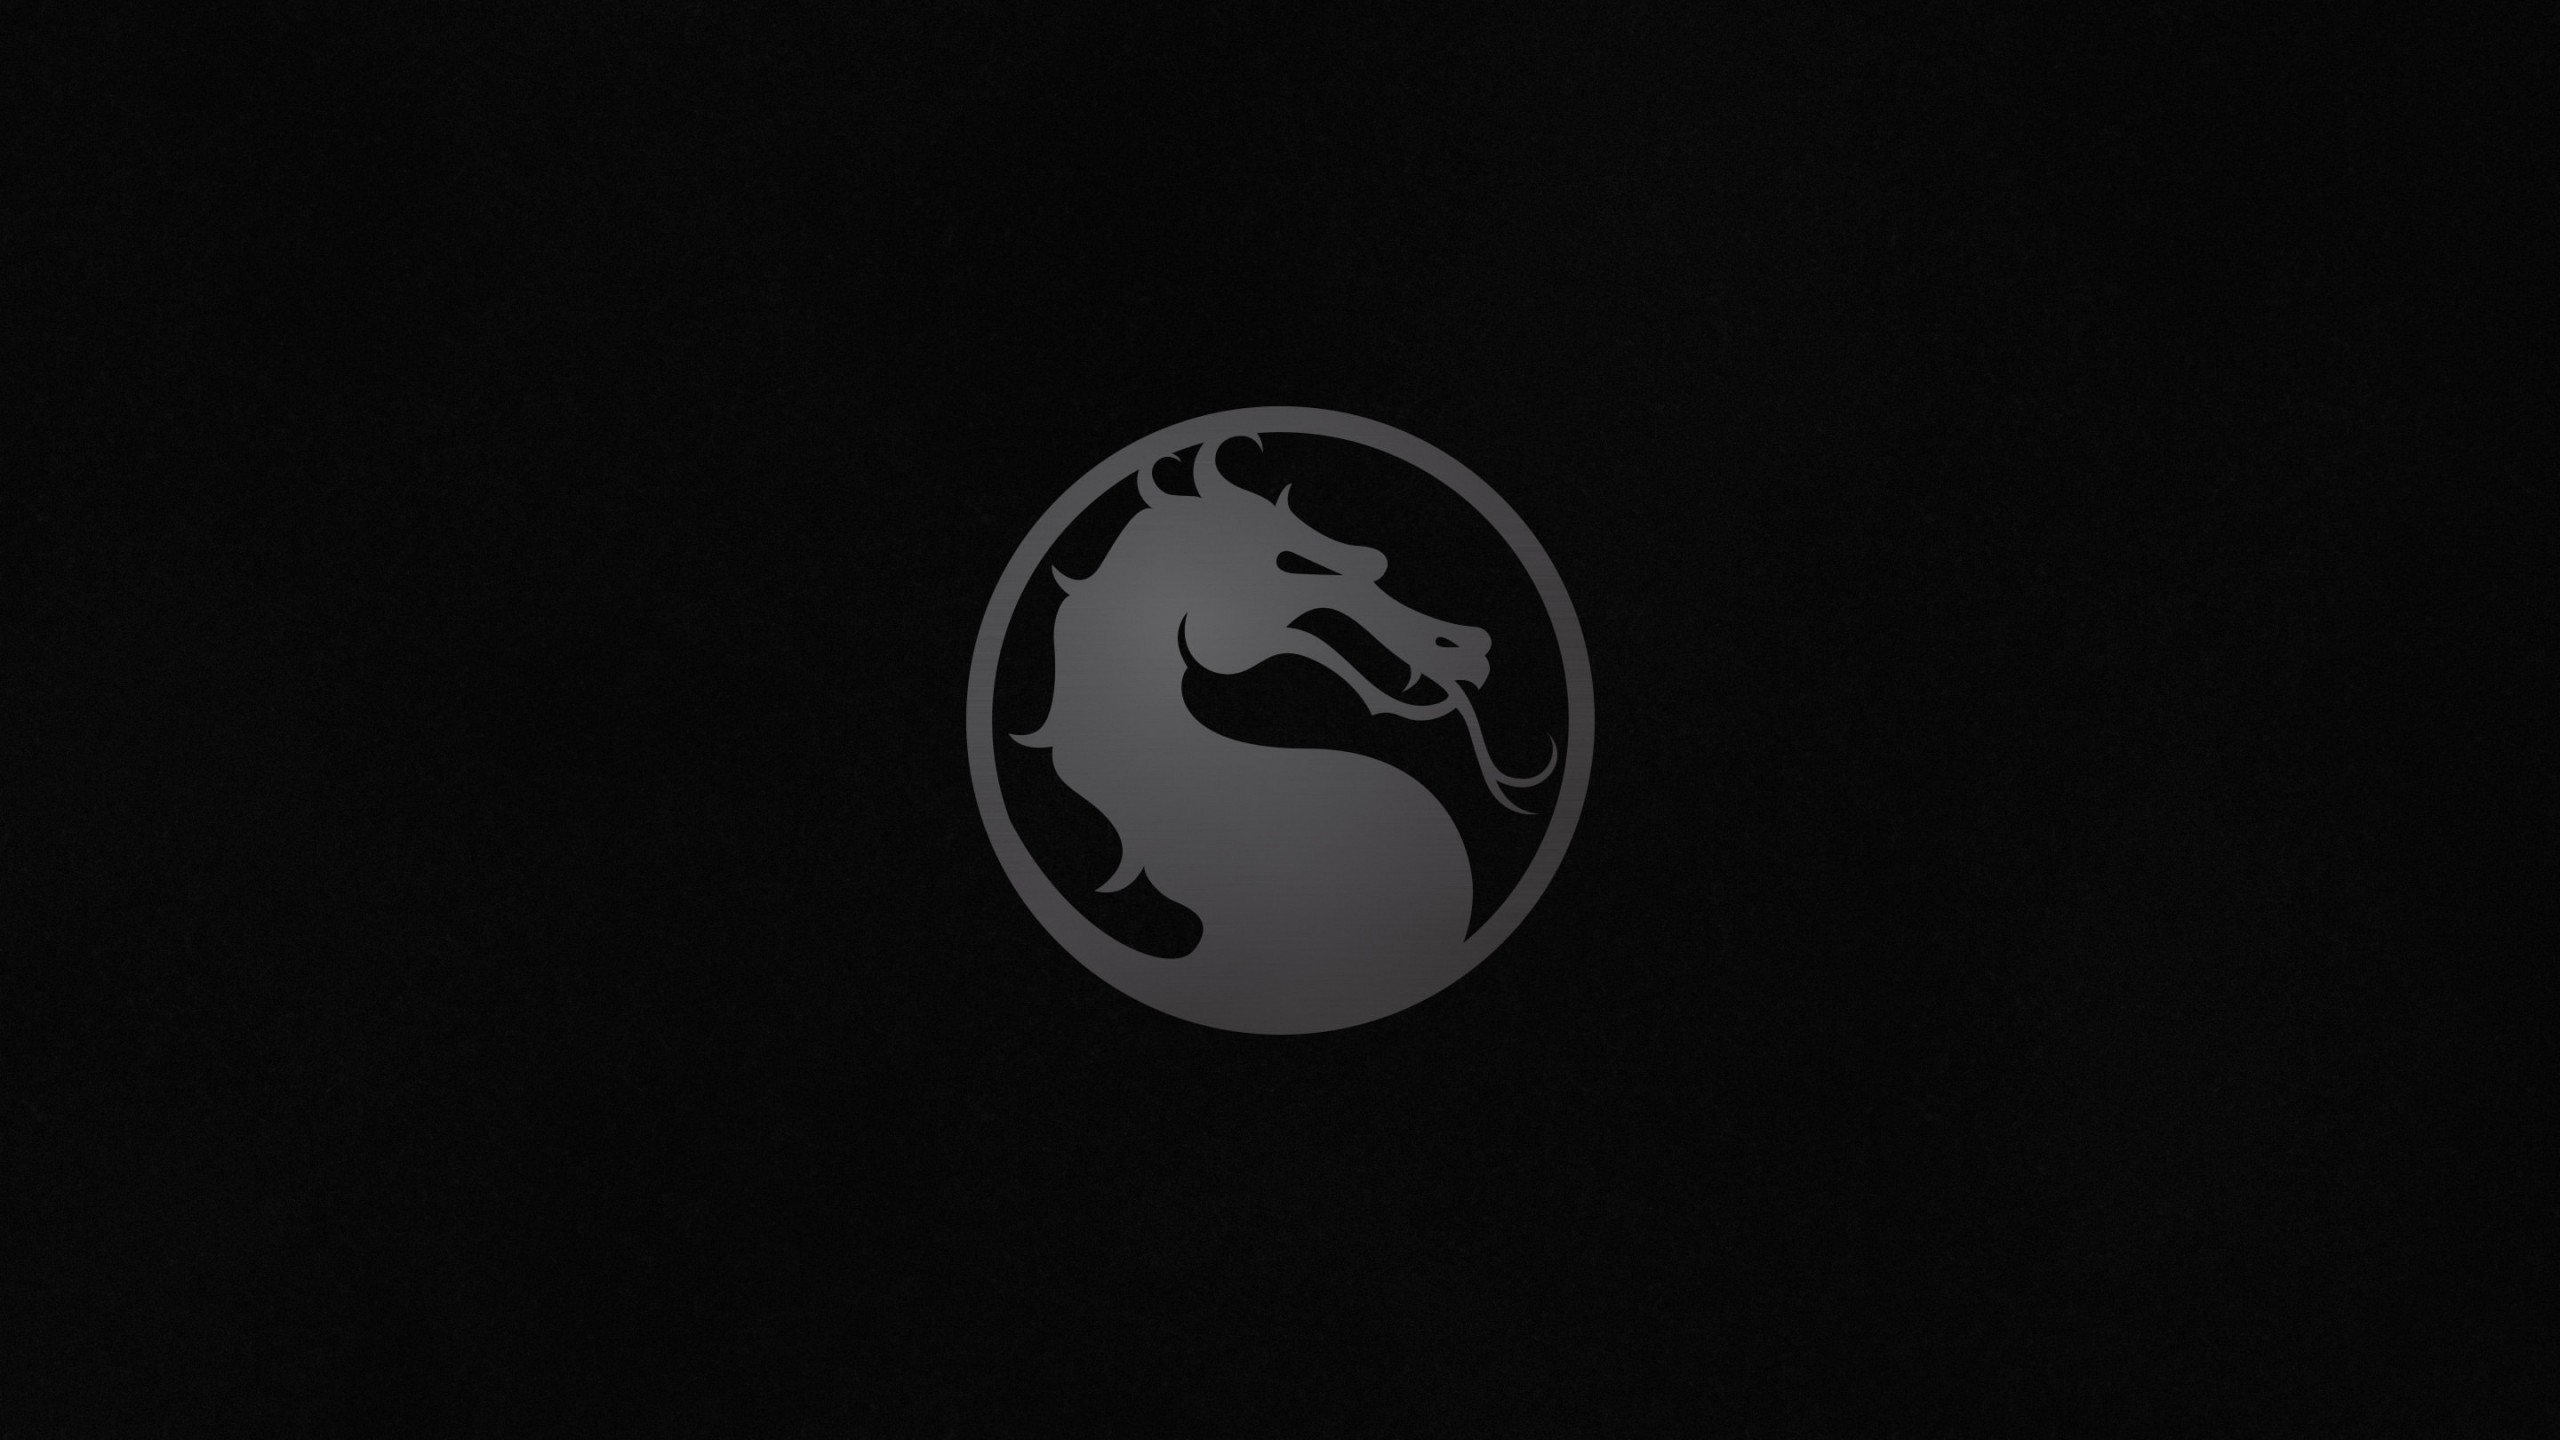 2560x1440 Mortal-kombat-logo-wallpapers-hd